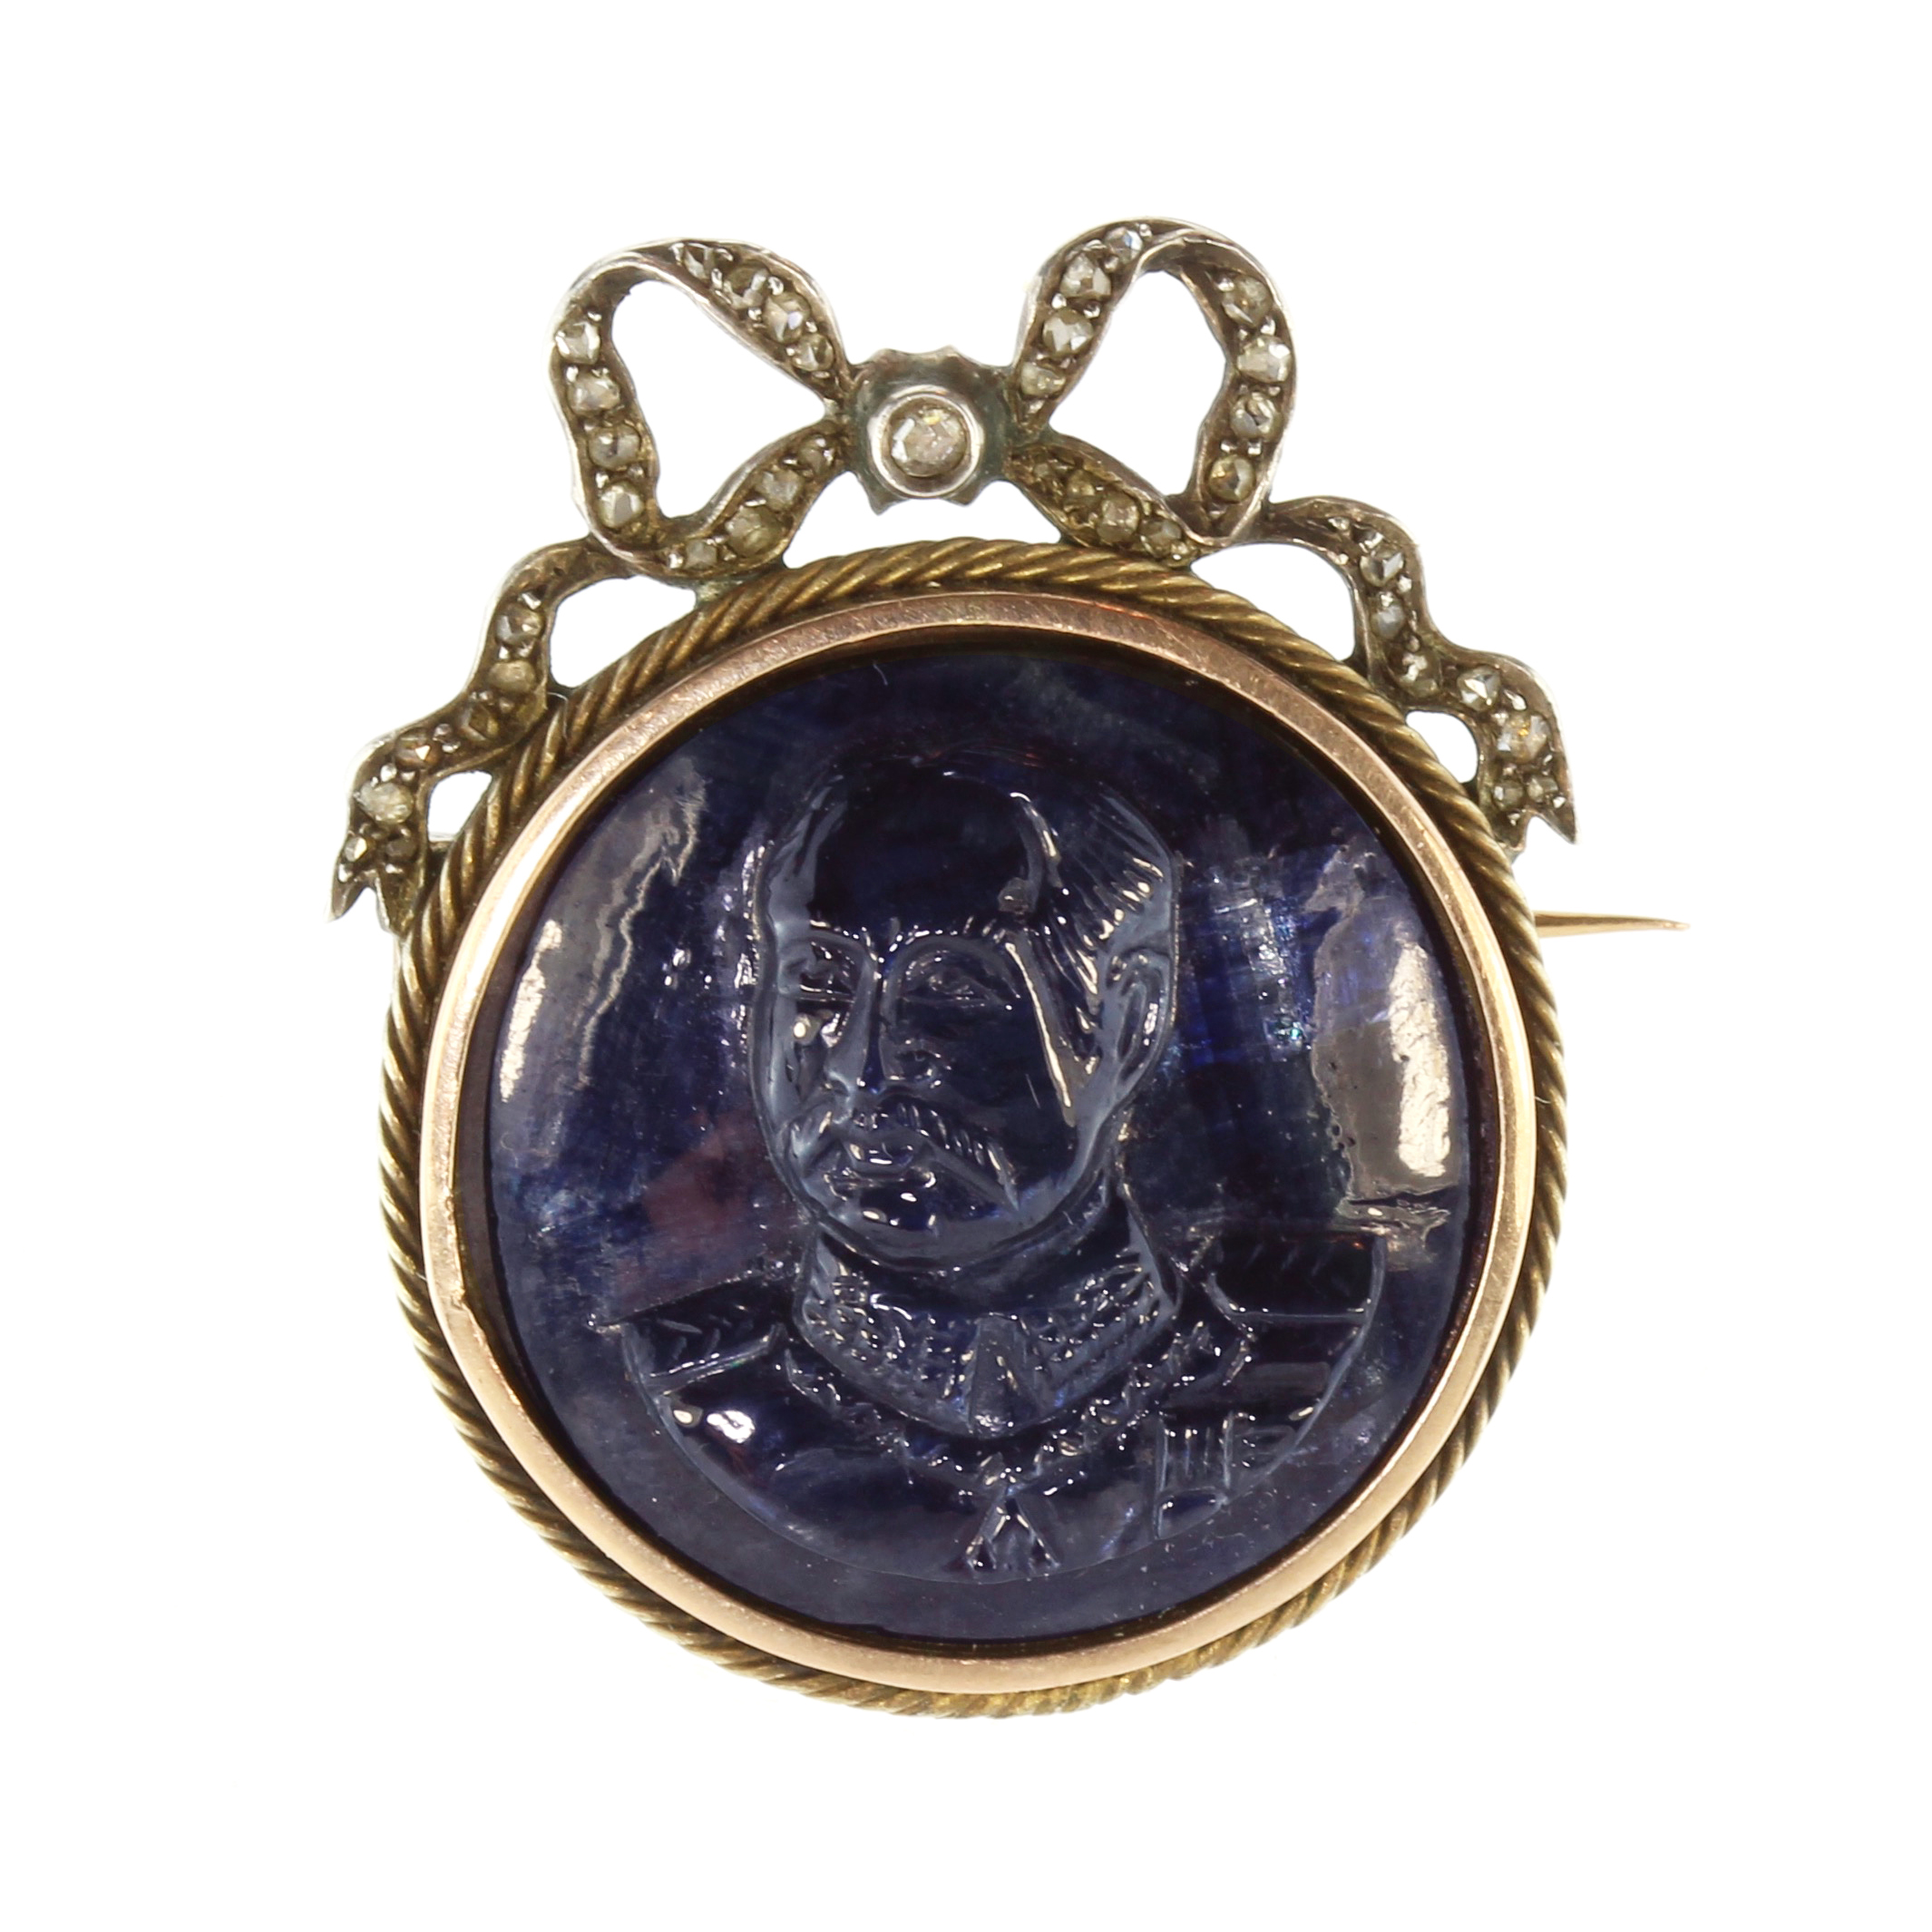 Los 40 - A French sapphire cameo and diamond brooch in gold and silver set with a large, circular carved blue